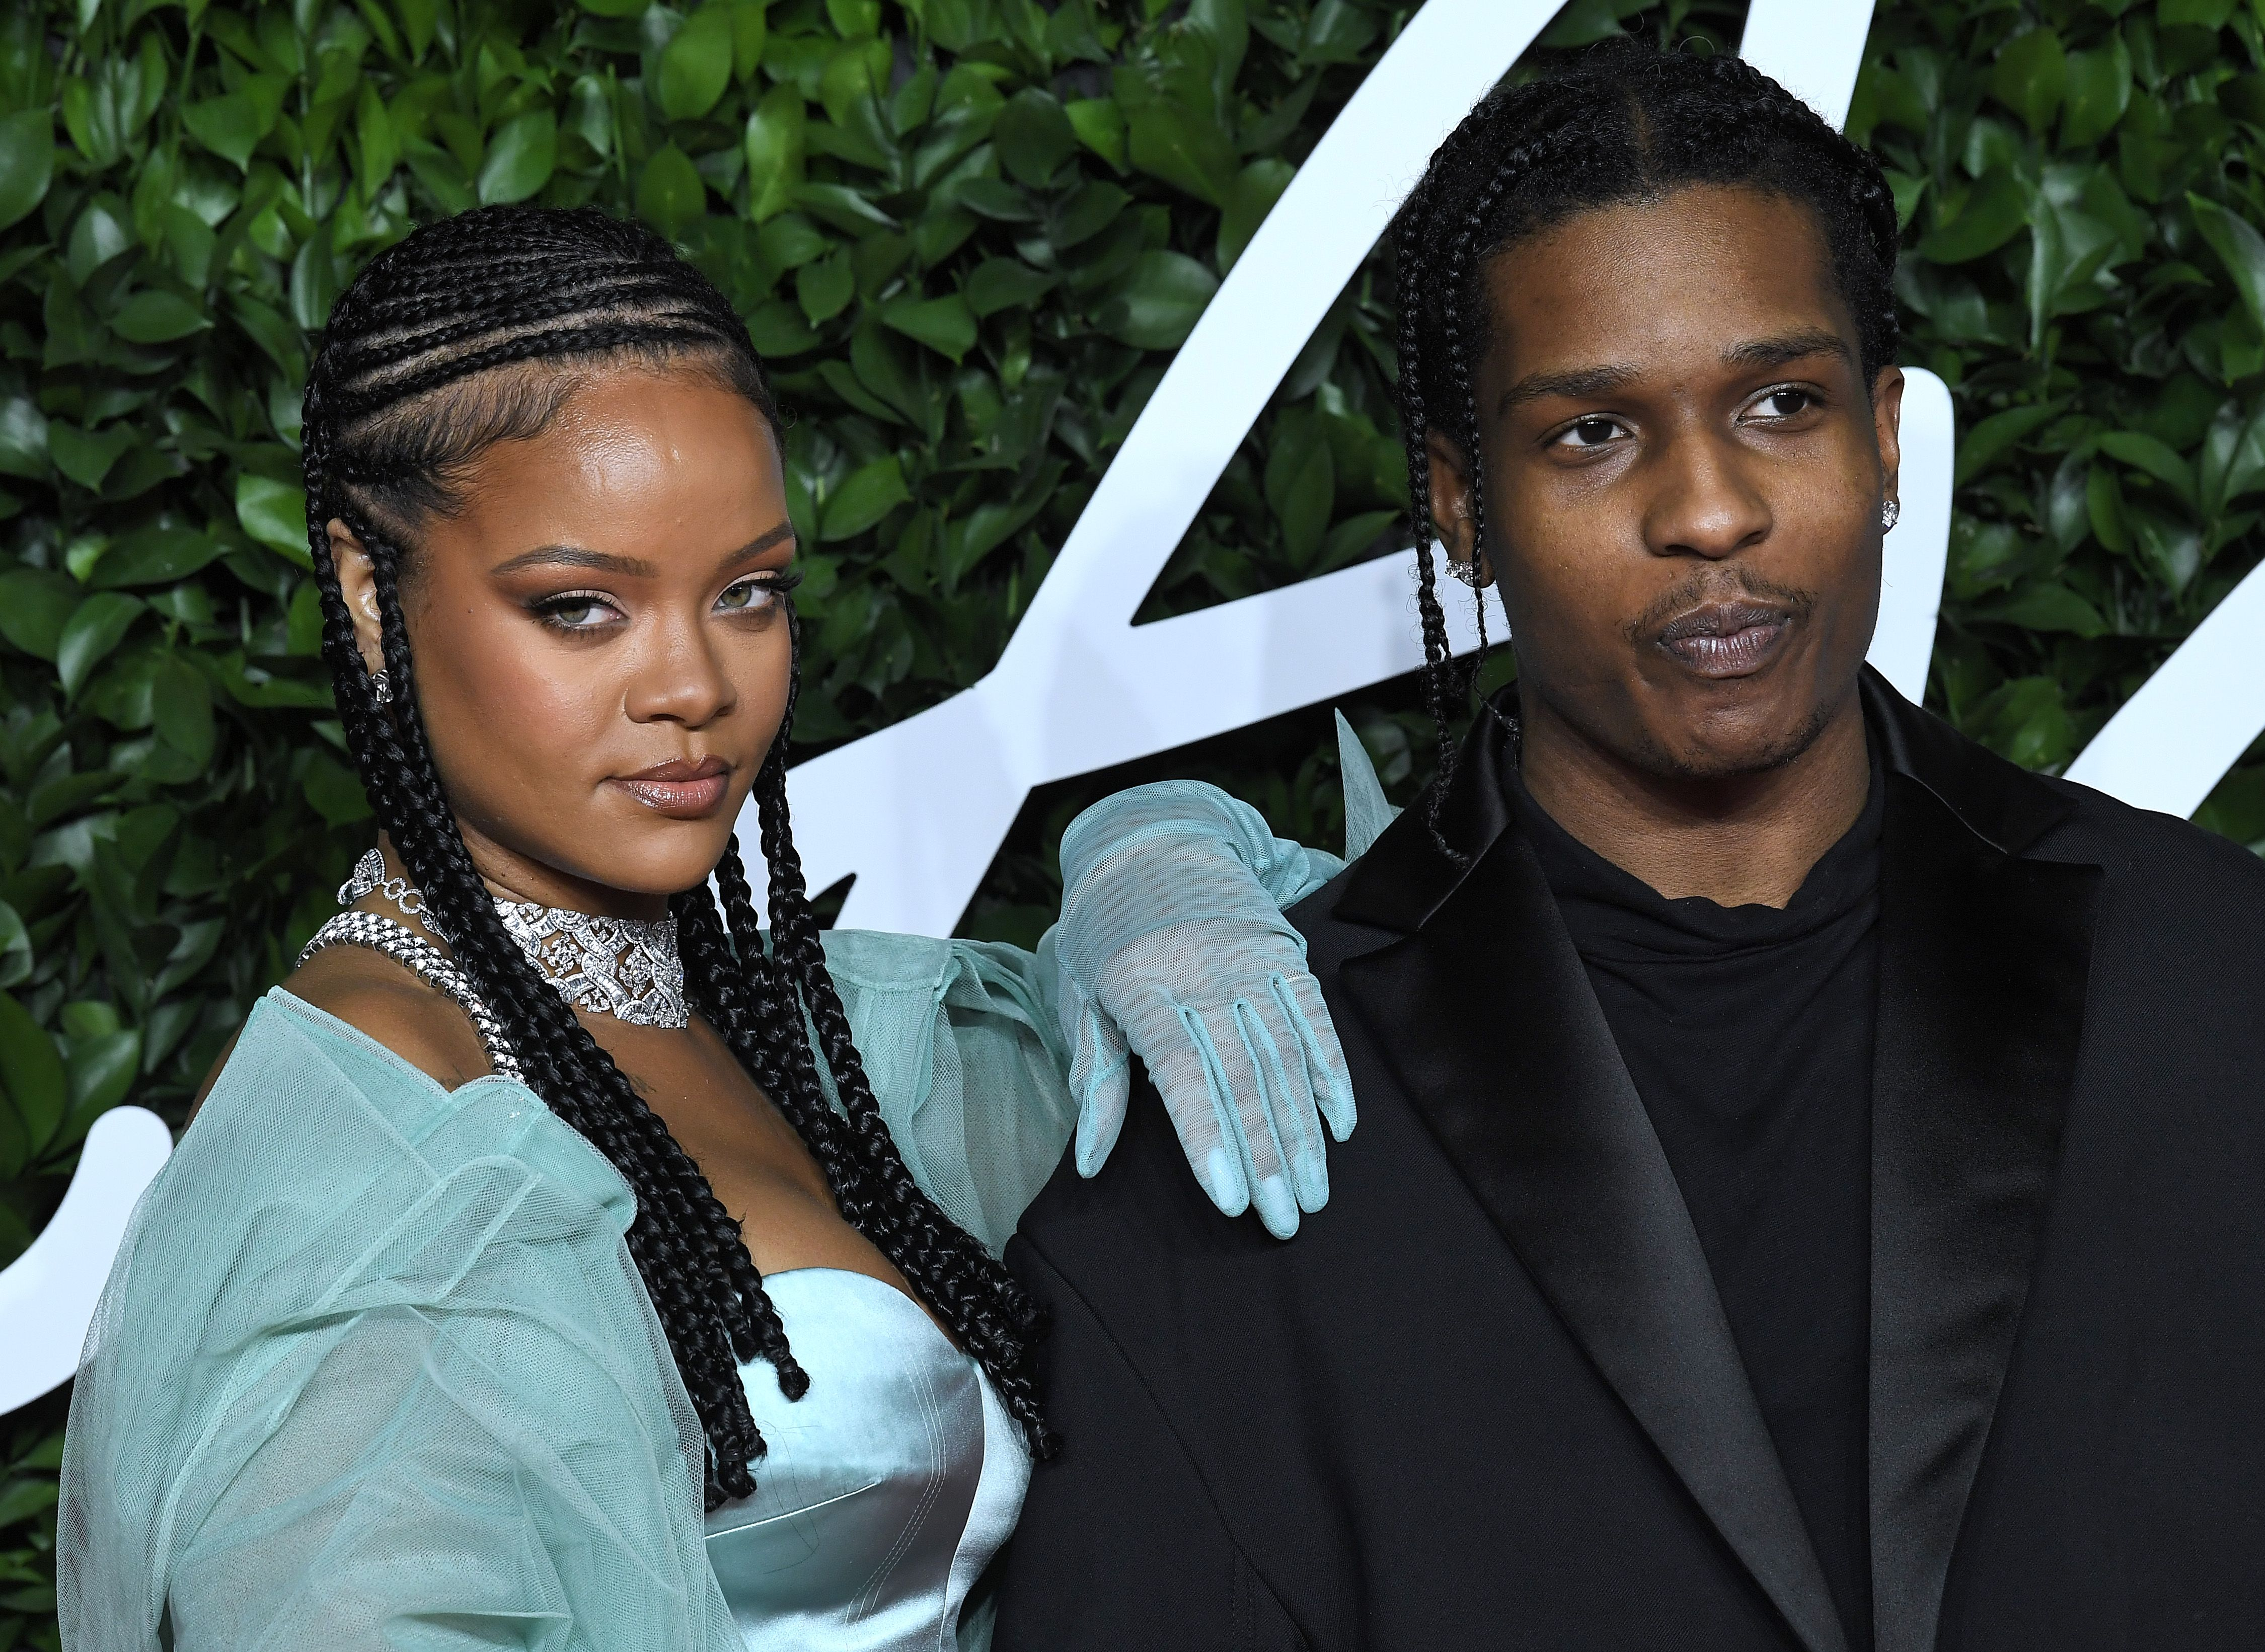 Who has asap rocky dated